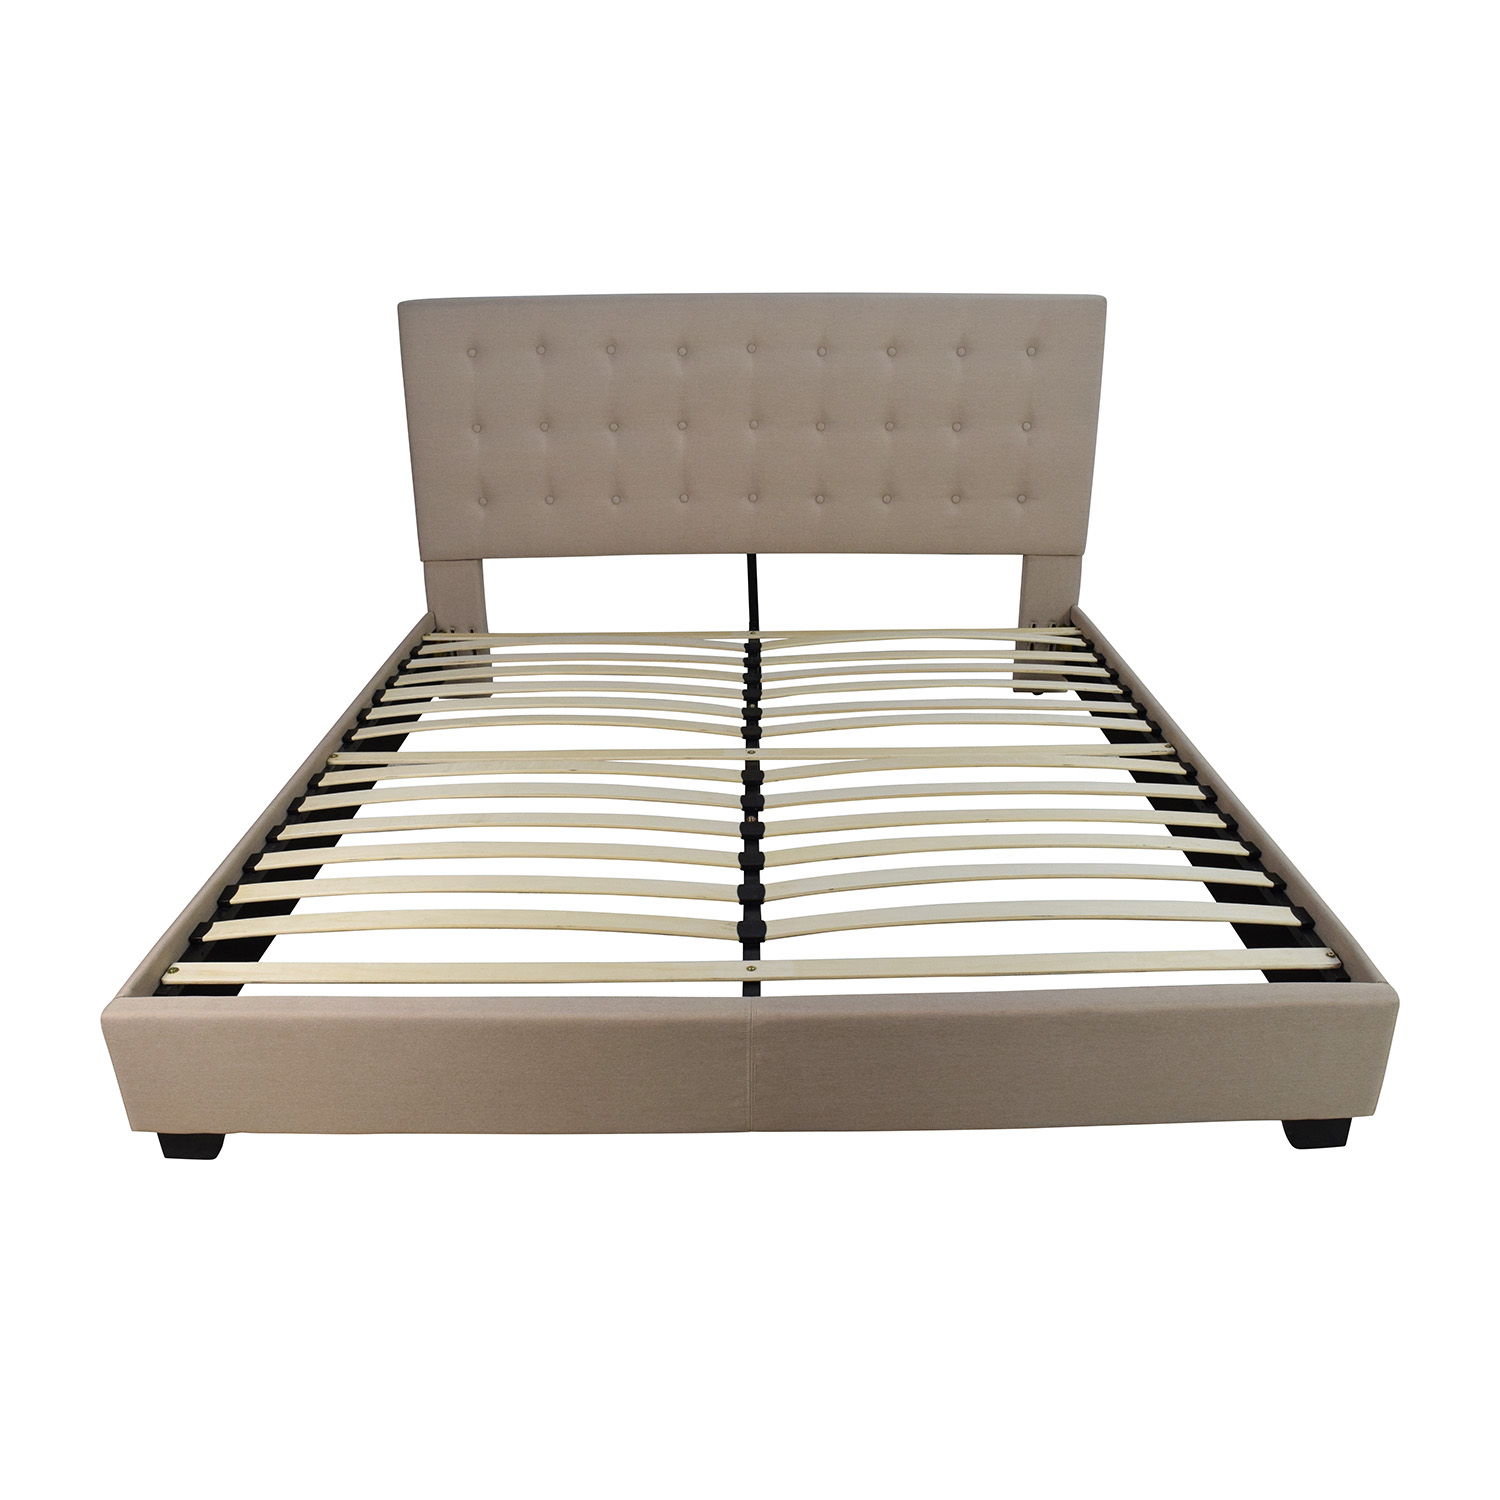 shop King Size Taupe Cloth Bed Frame online